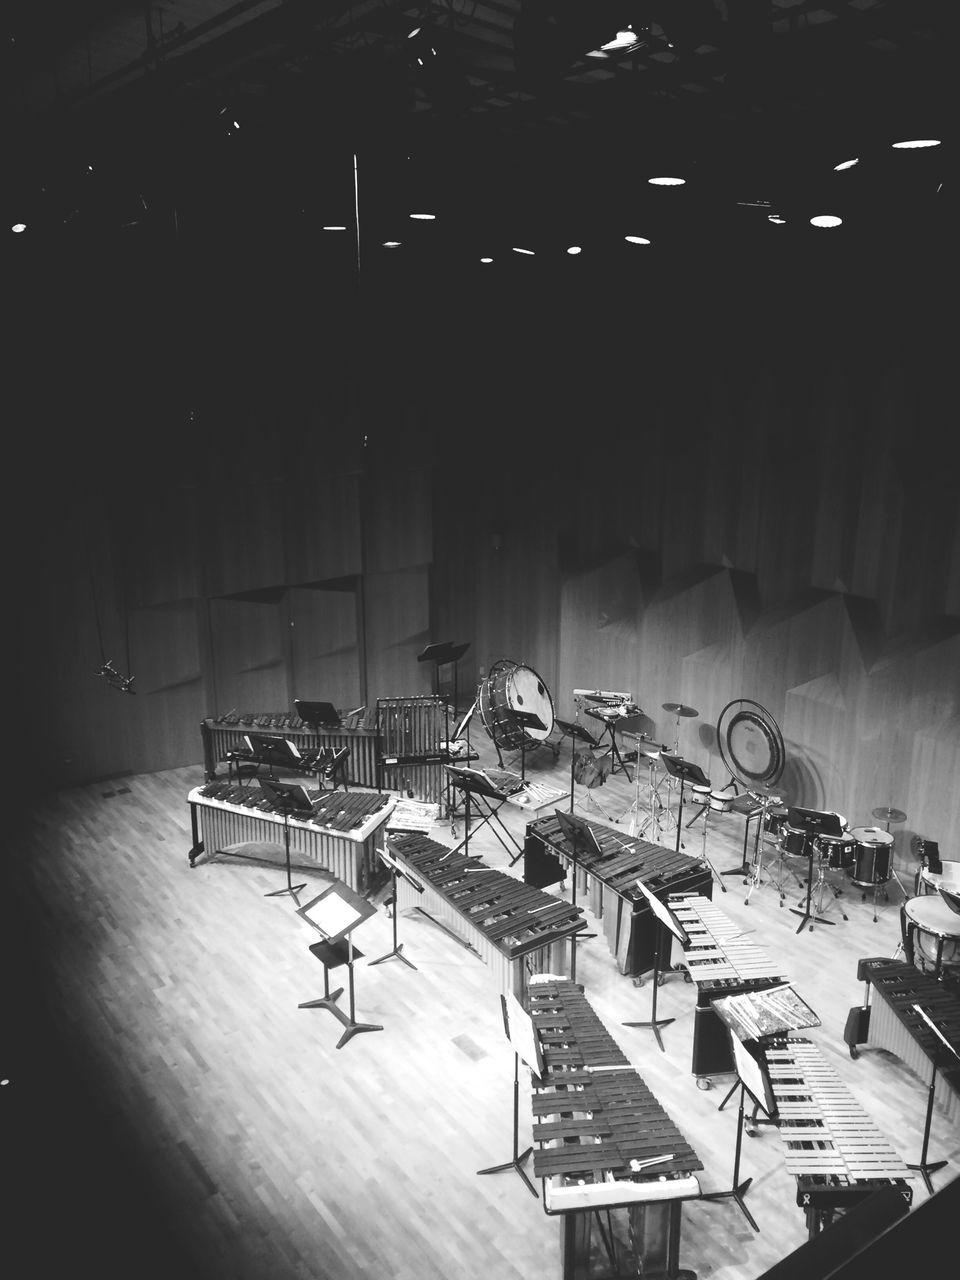 High Angle View Of Musical Instruments On Stage